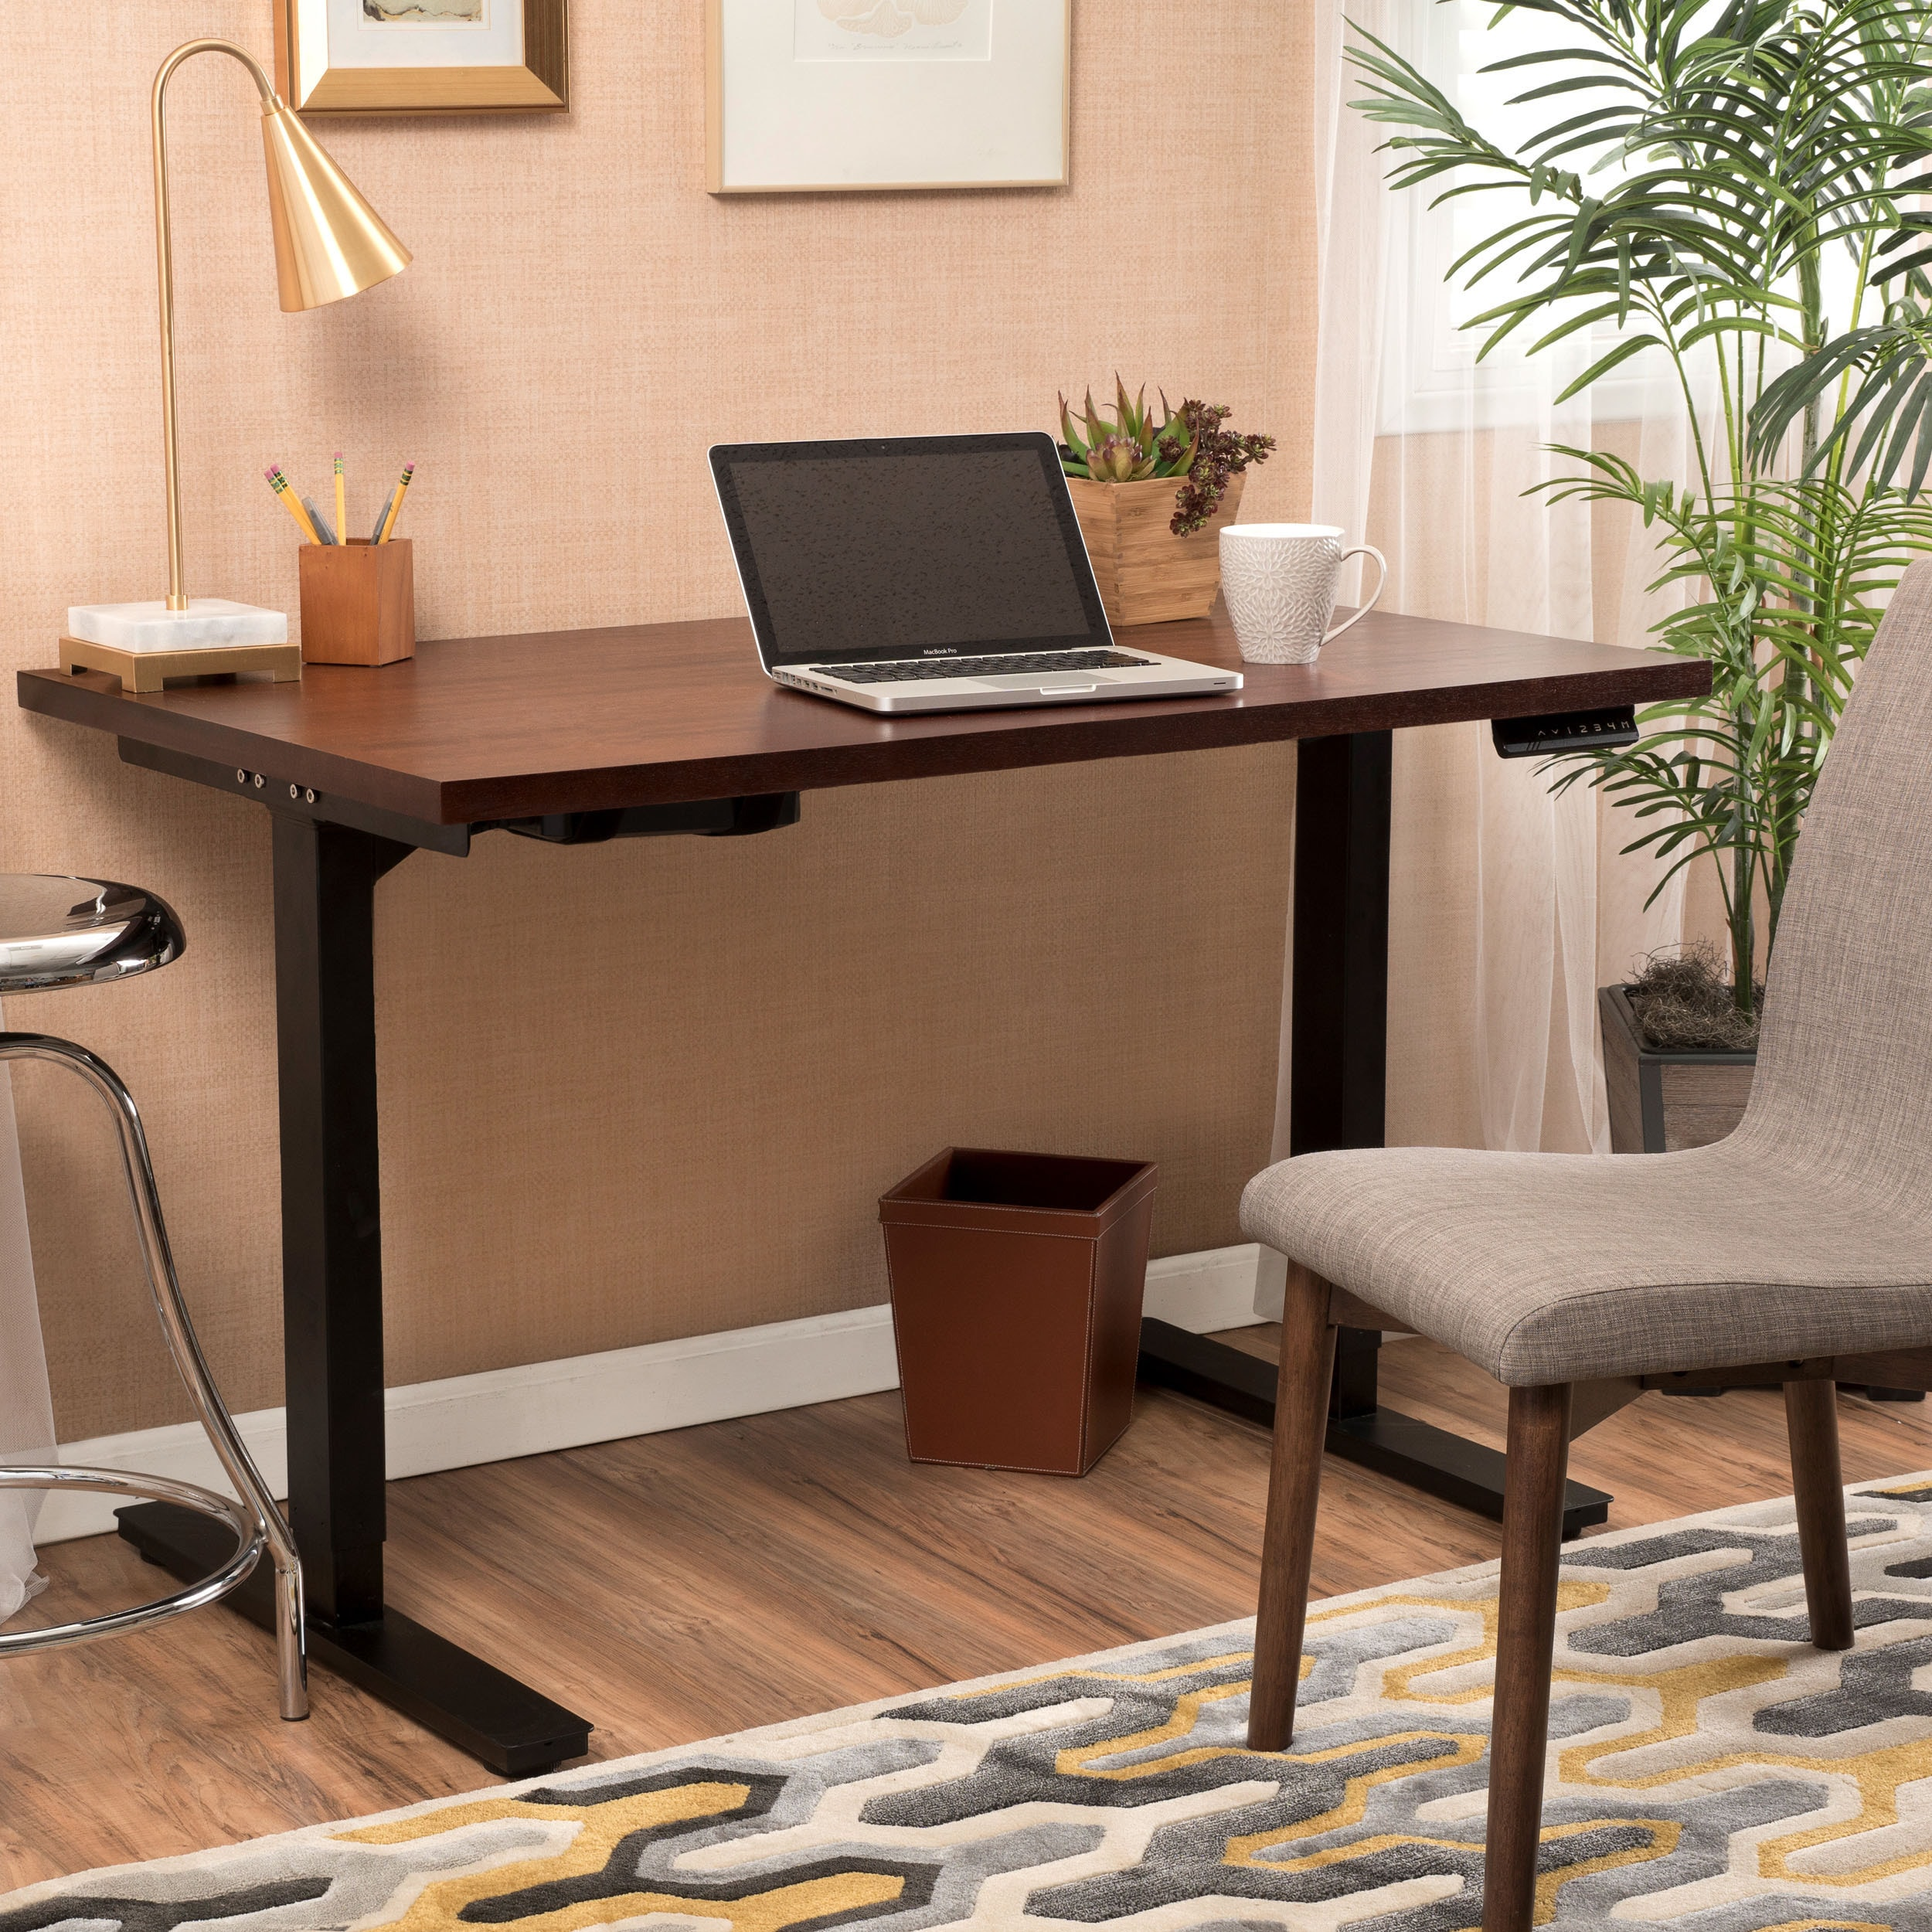 executive office secretary oak white legs writing table desk go desks furniture inch of to contemporary small with drawers metal full designs wood size dark natural black